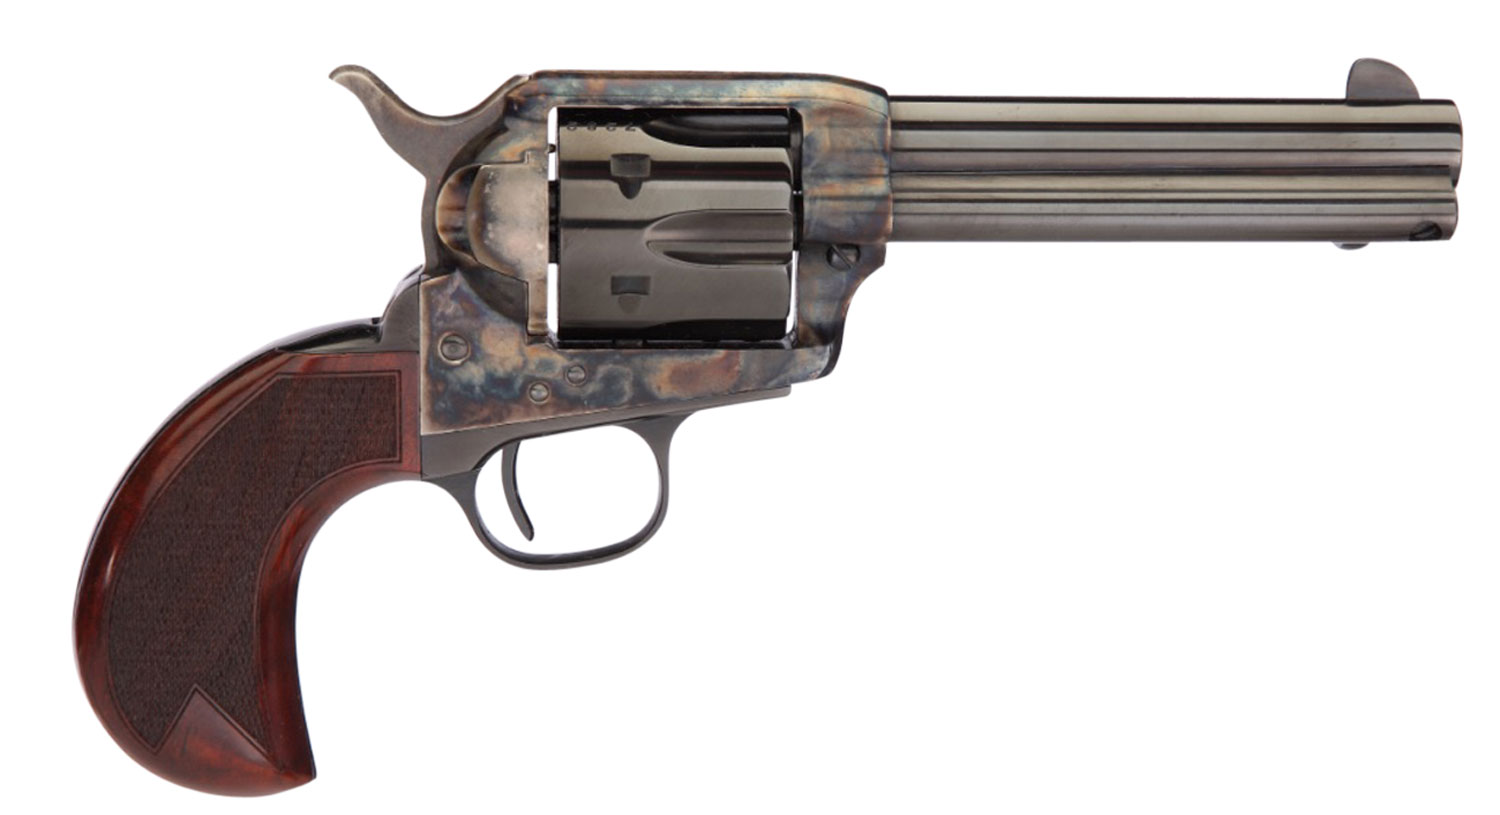 Taylors and Company 555153 1873 Cattleman Birdshead Single 357 Magnum 4.75